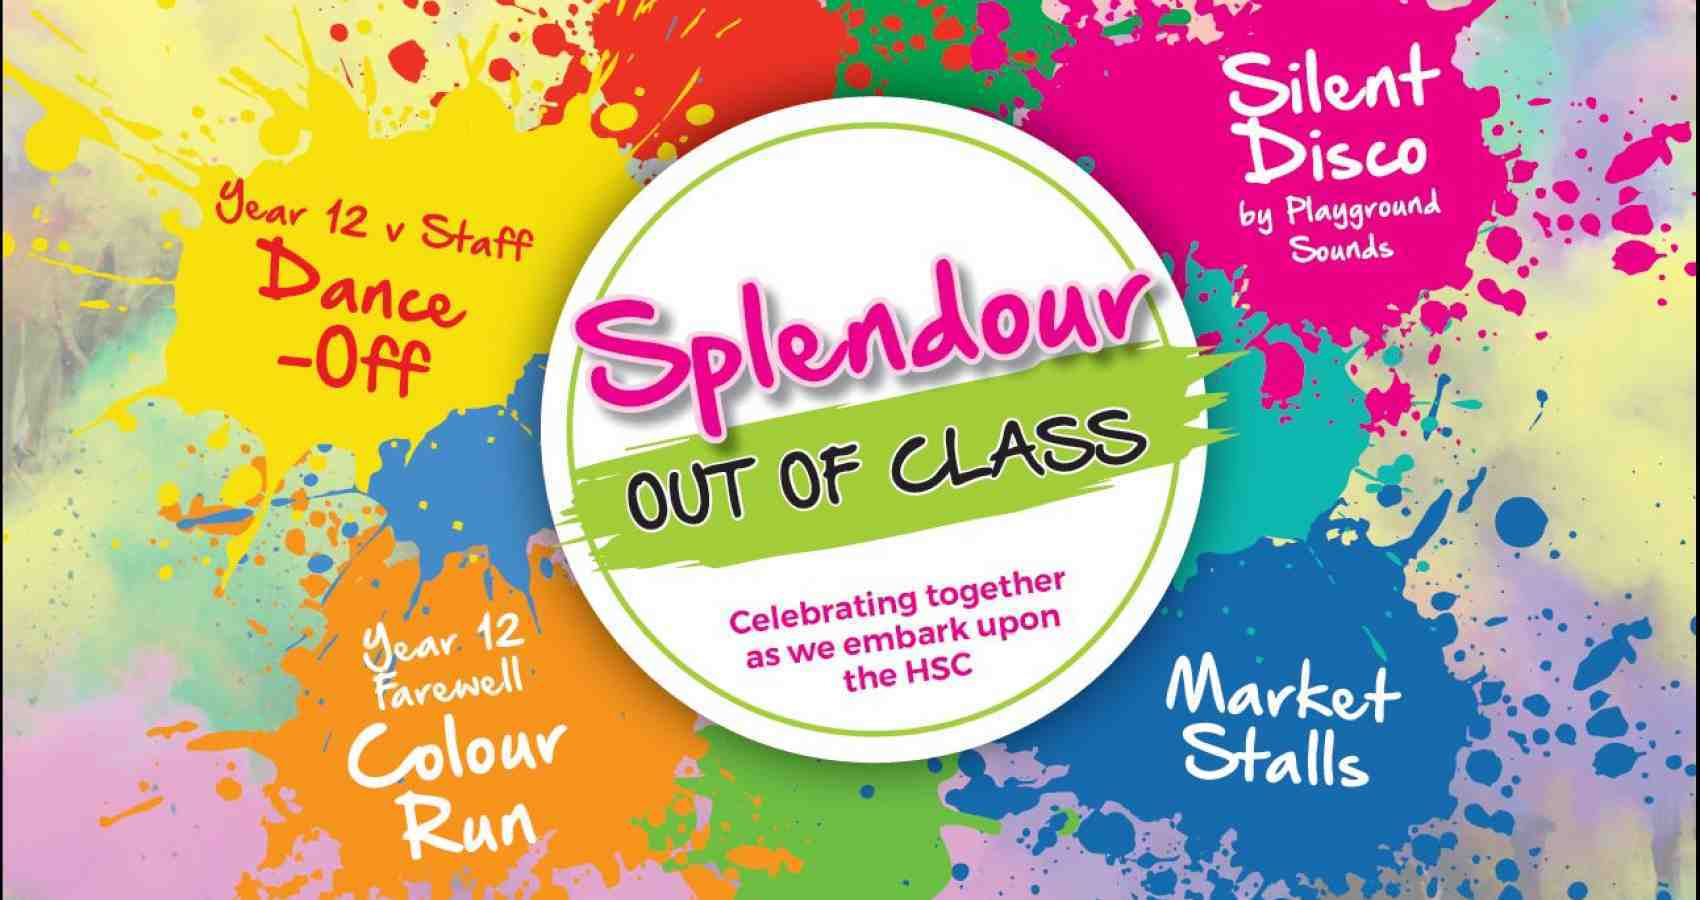 Splendour out of Class